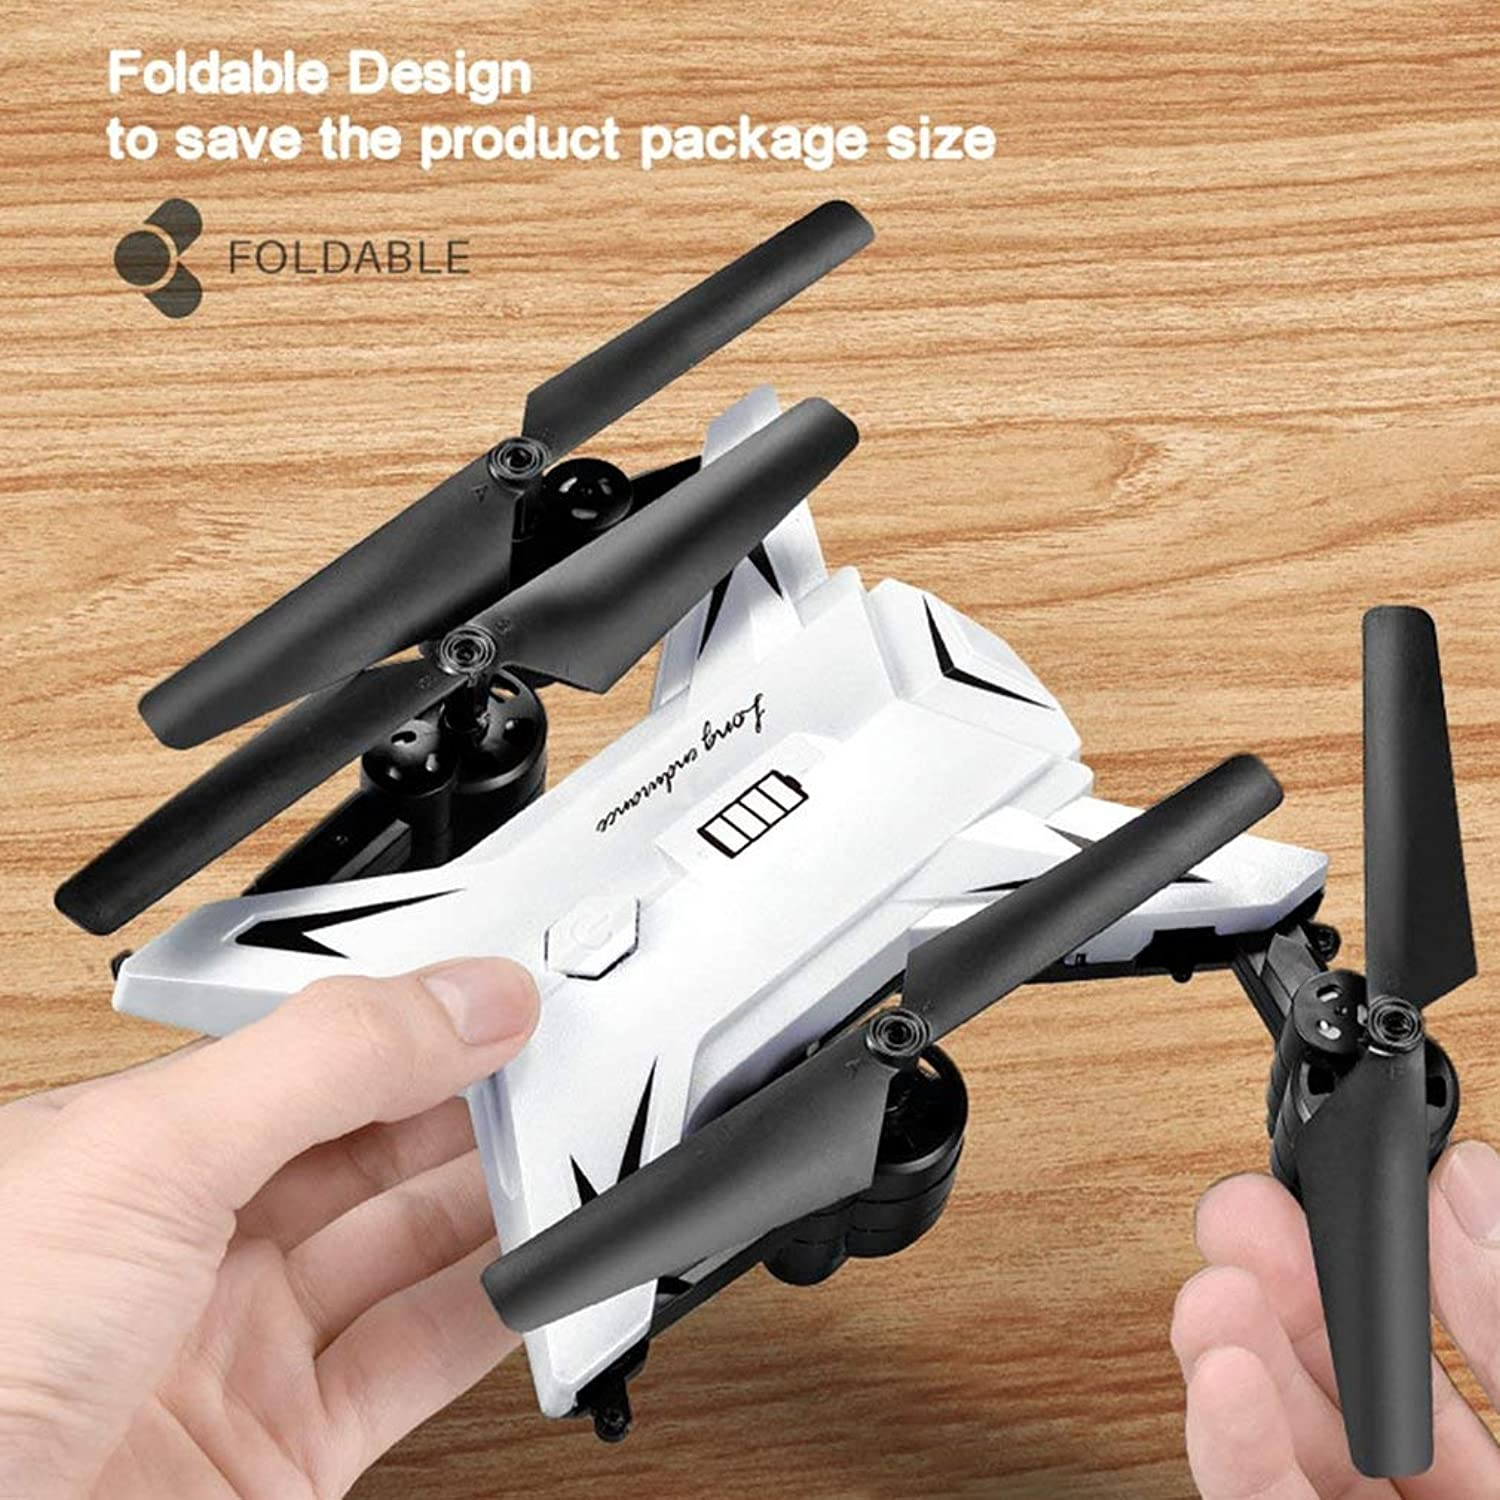 Generic KY601S Full RC Drone with 1080P HD Camera 4 Channel Long Lasting Foldable Arm Remote Control quadrocopter timely Transmission White 0.3MP